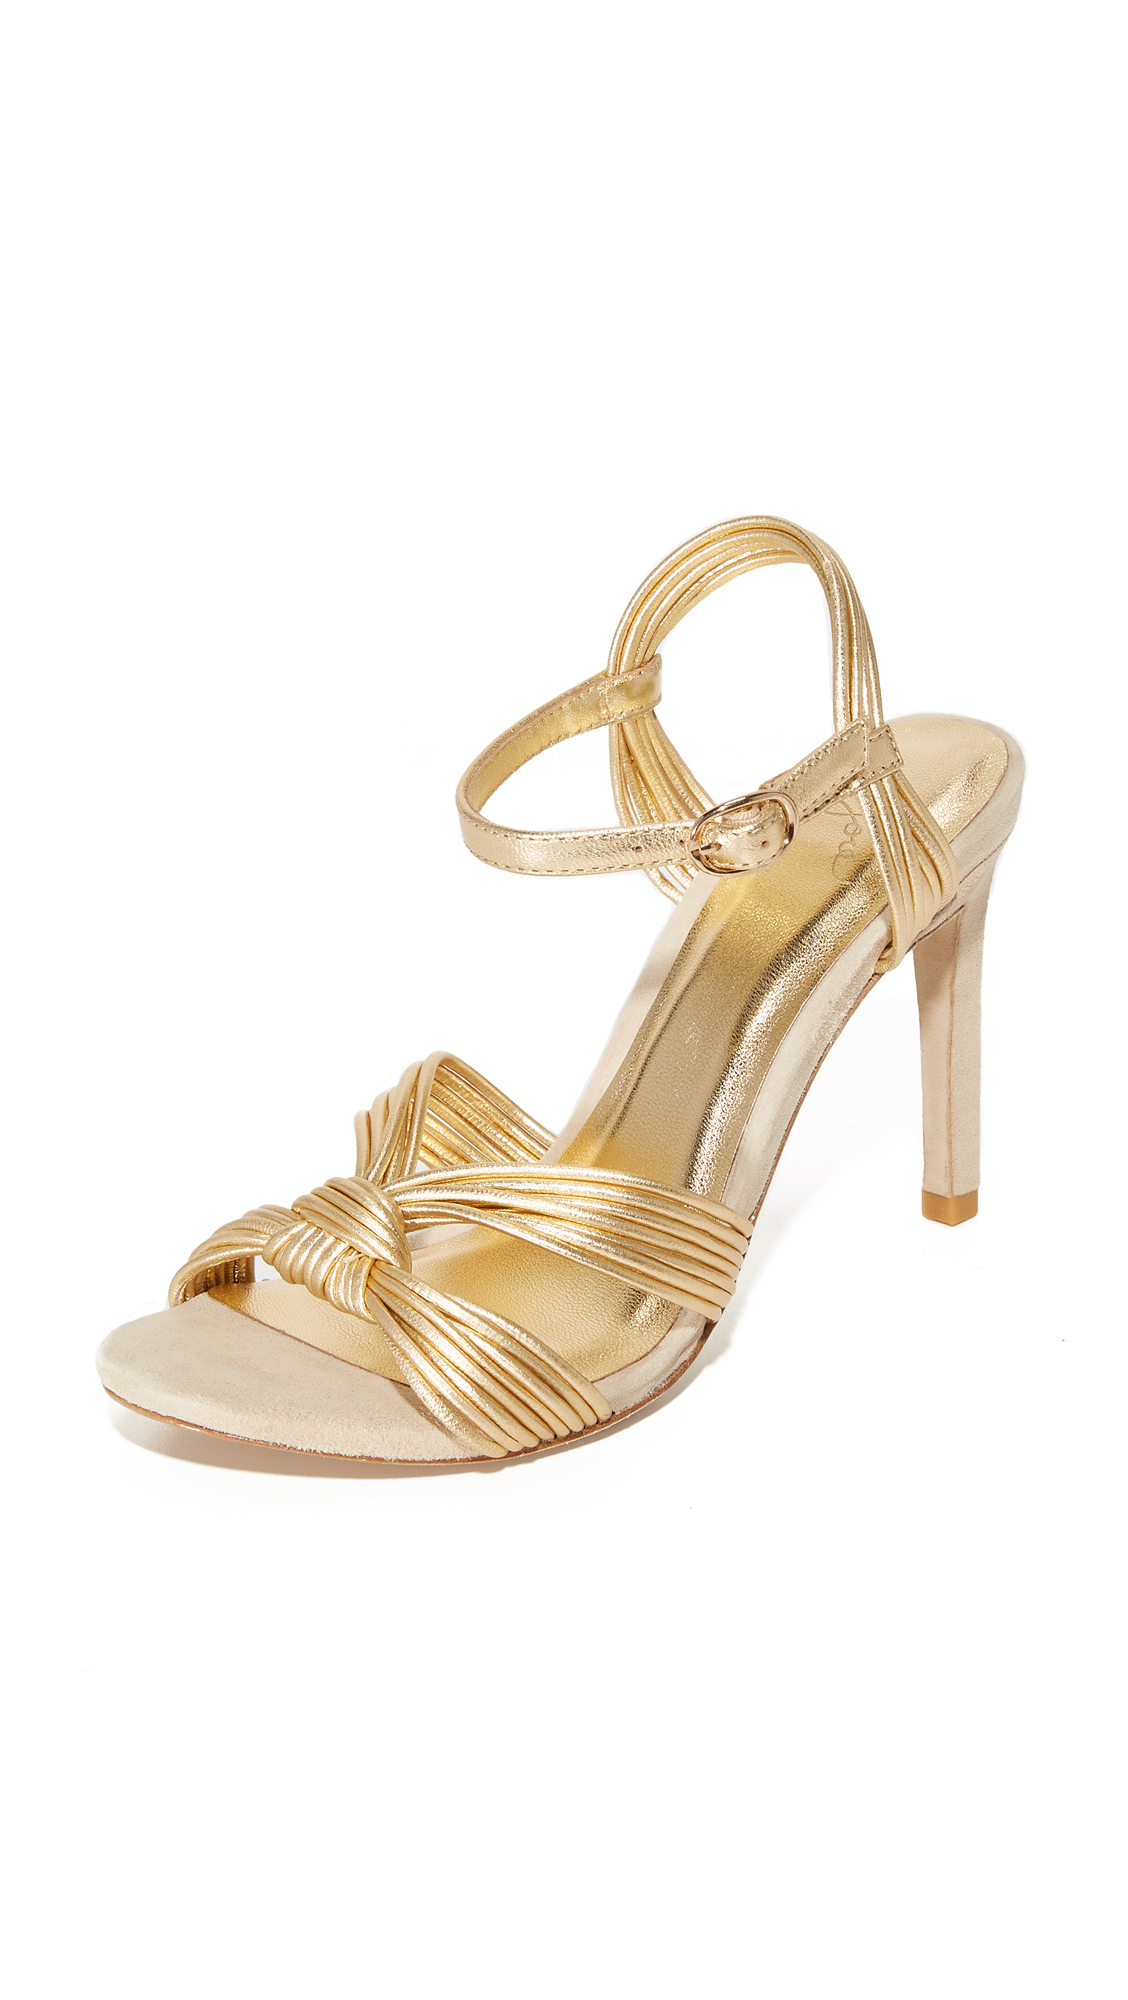 Joie Airlia Sandals - Gold